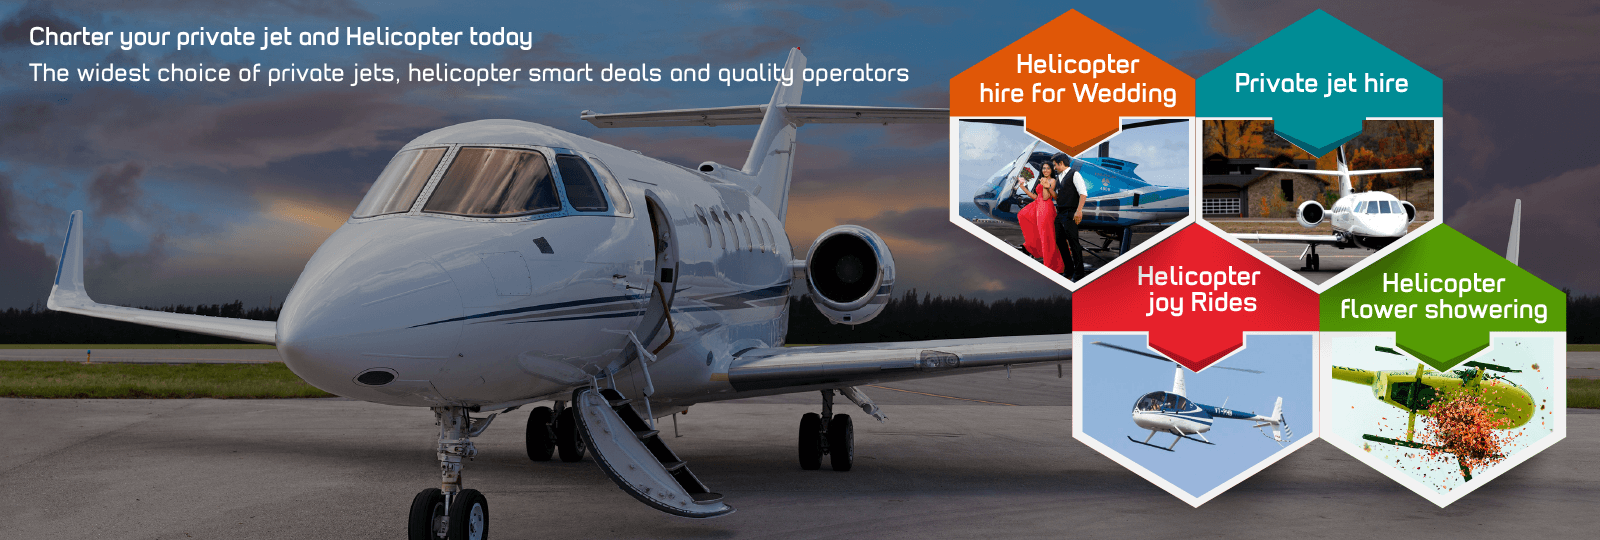 Private jet hire in ahmedabad